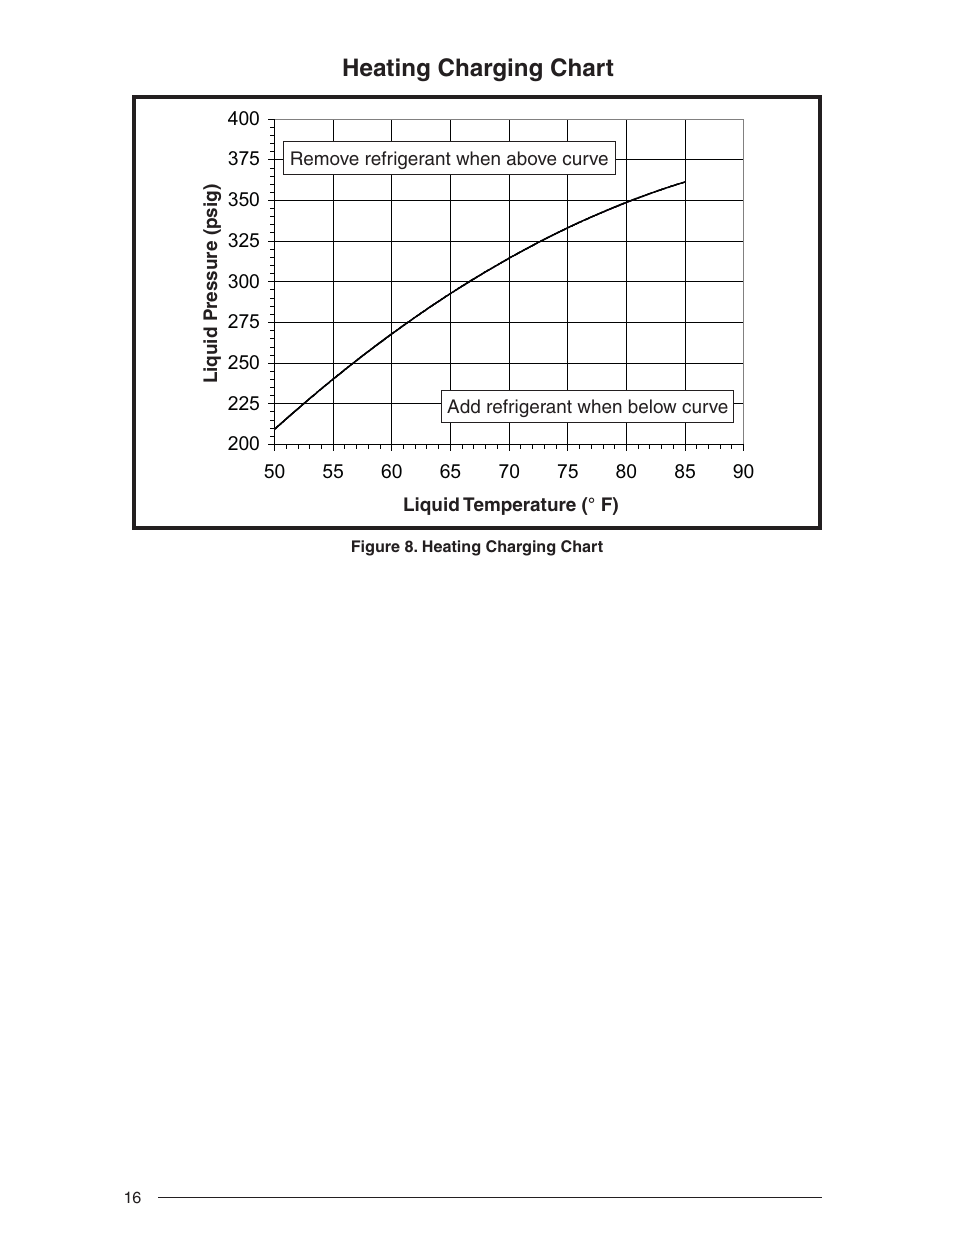 Heating Charging Chart Nordyne Outdoor Heat Pump Two Stage Split System R 410a User Manual Page 16 20